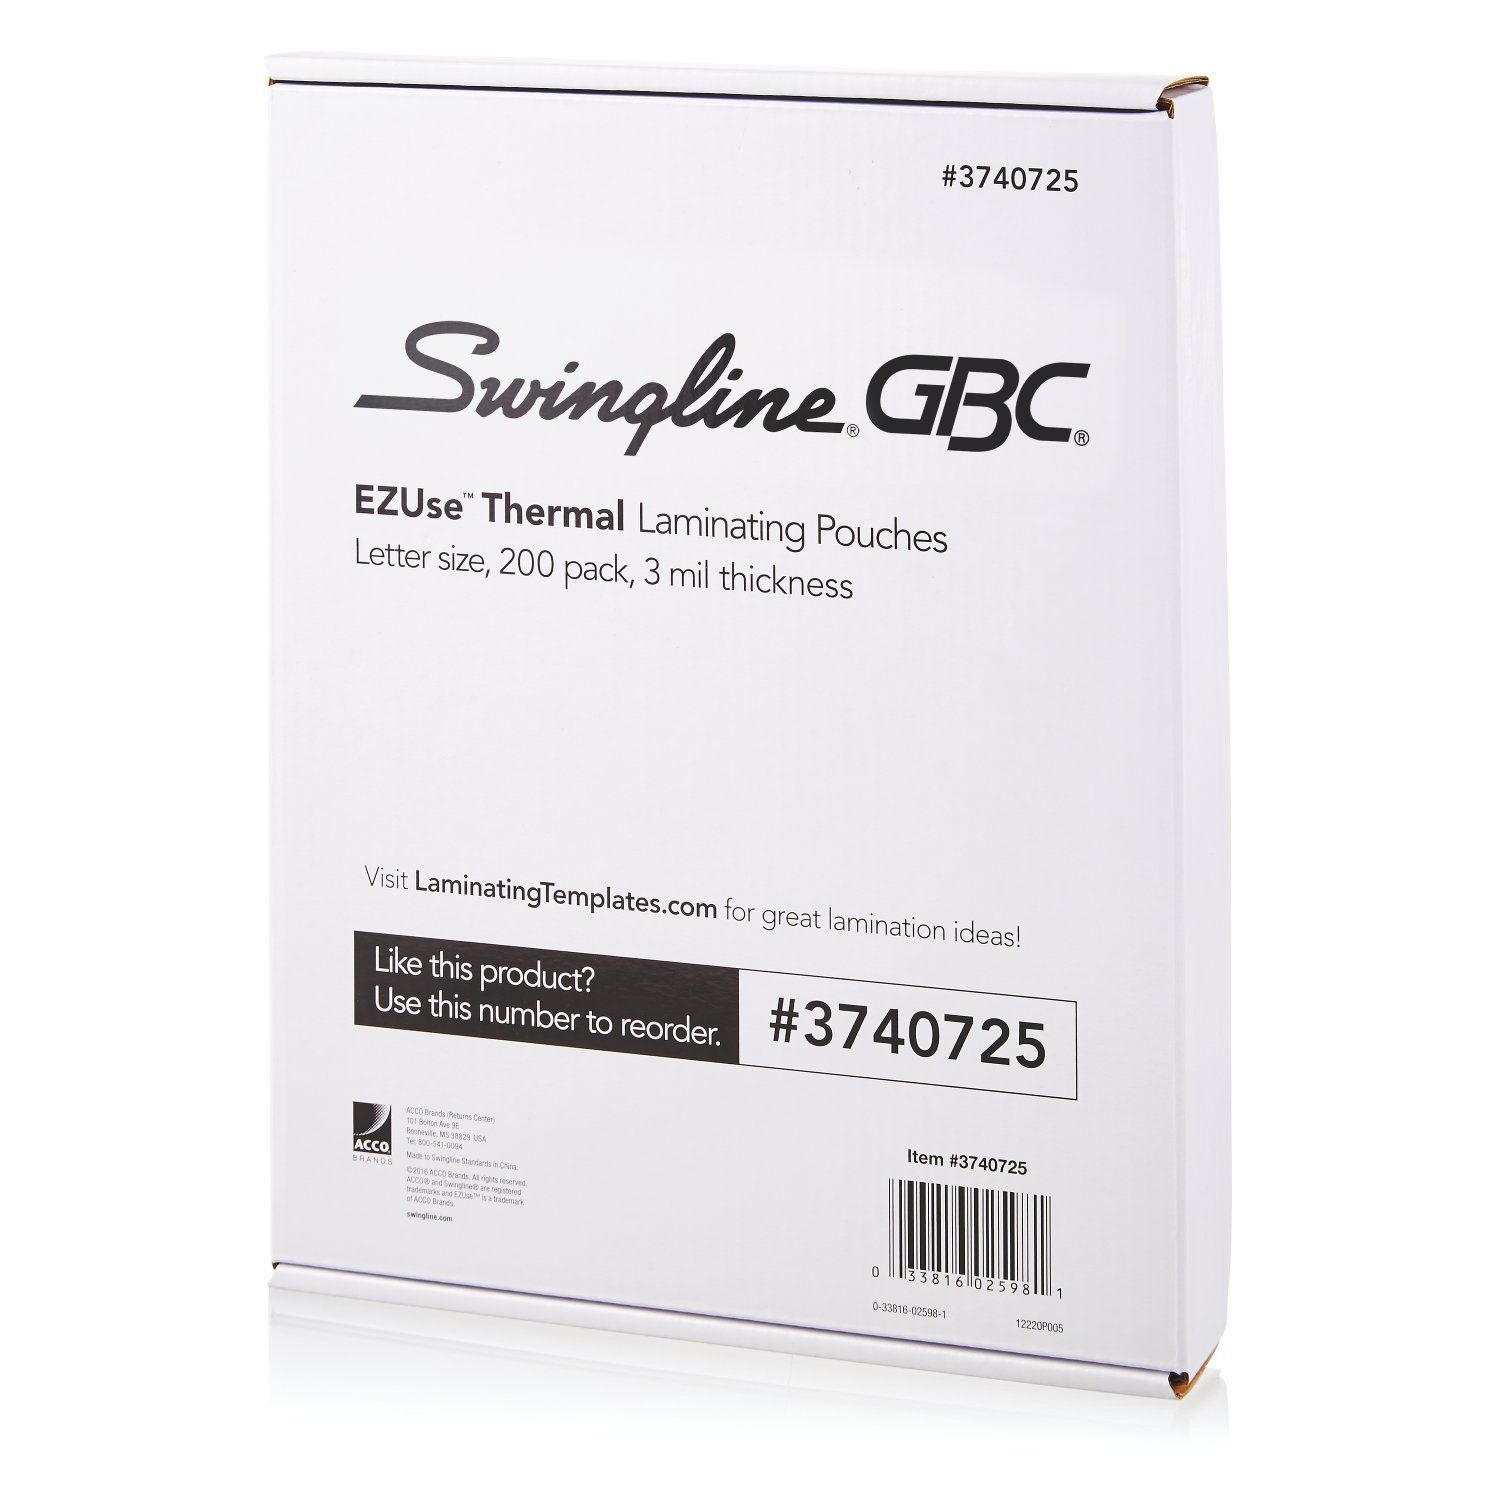 Swingline Gbc Thermal Laminating Sheets Pouches Letter Size 3 Mil Ezuse 100 Count 3740725 To View Further For This Letter Size Lettering Glue Crafts